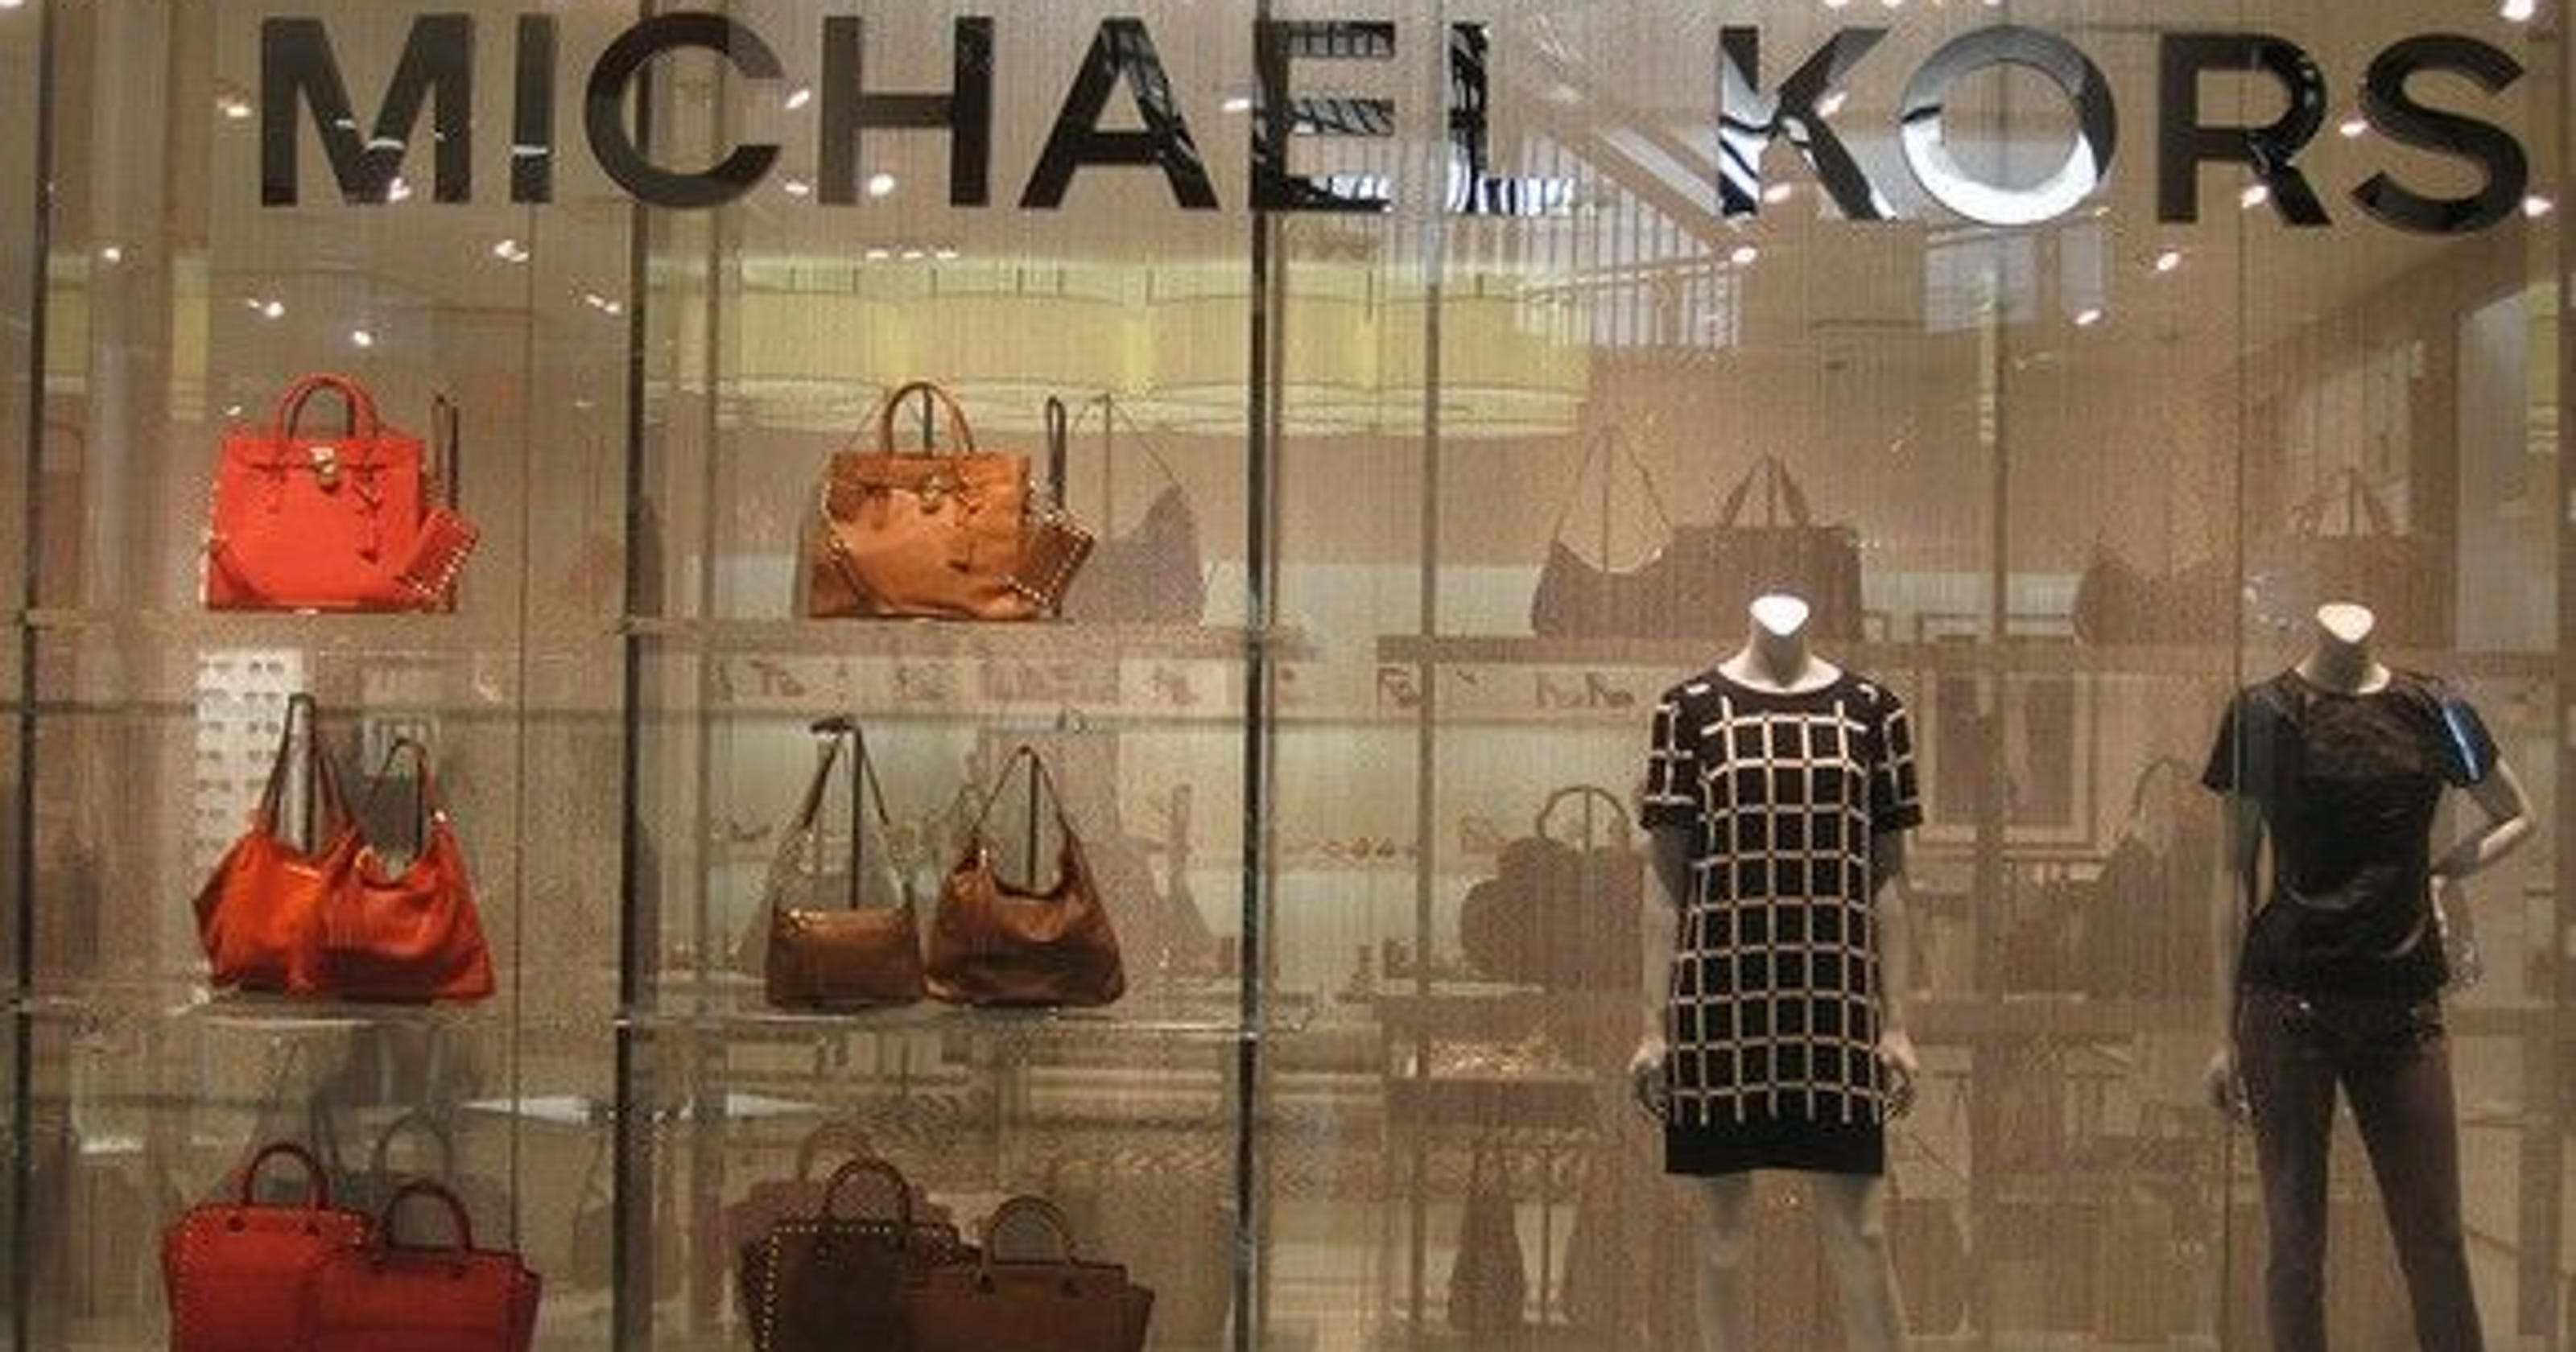 511fd81f21 Michael Kors to open at Altoona outlet mall